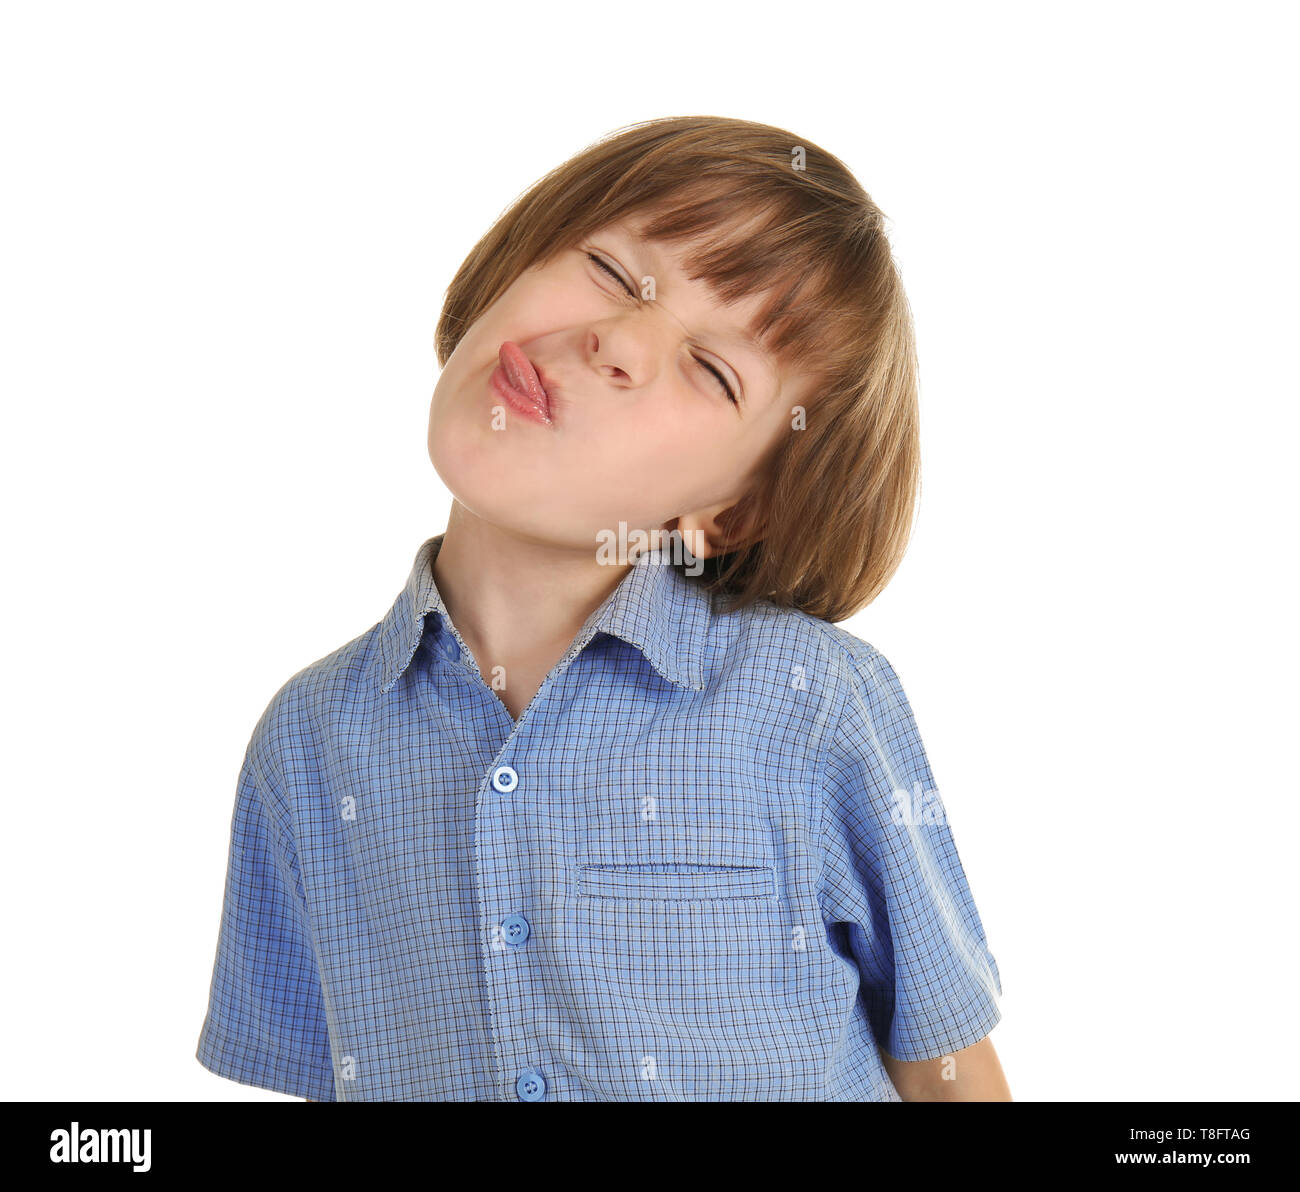 Cute little boy showing tongue on white background - Stock Image